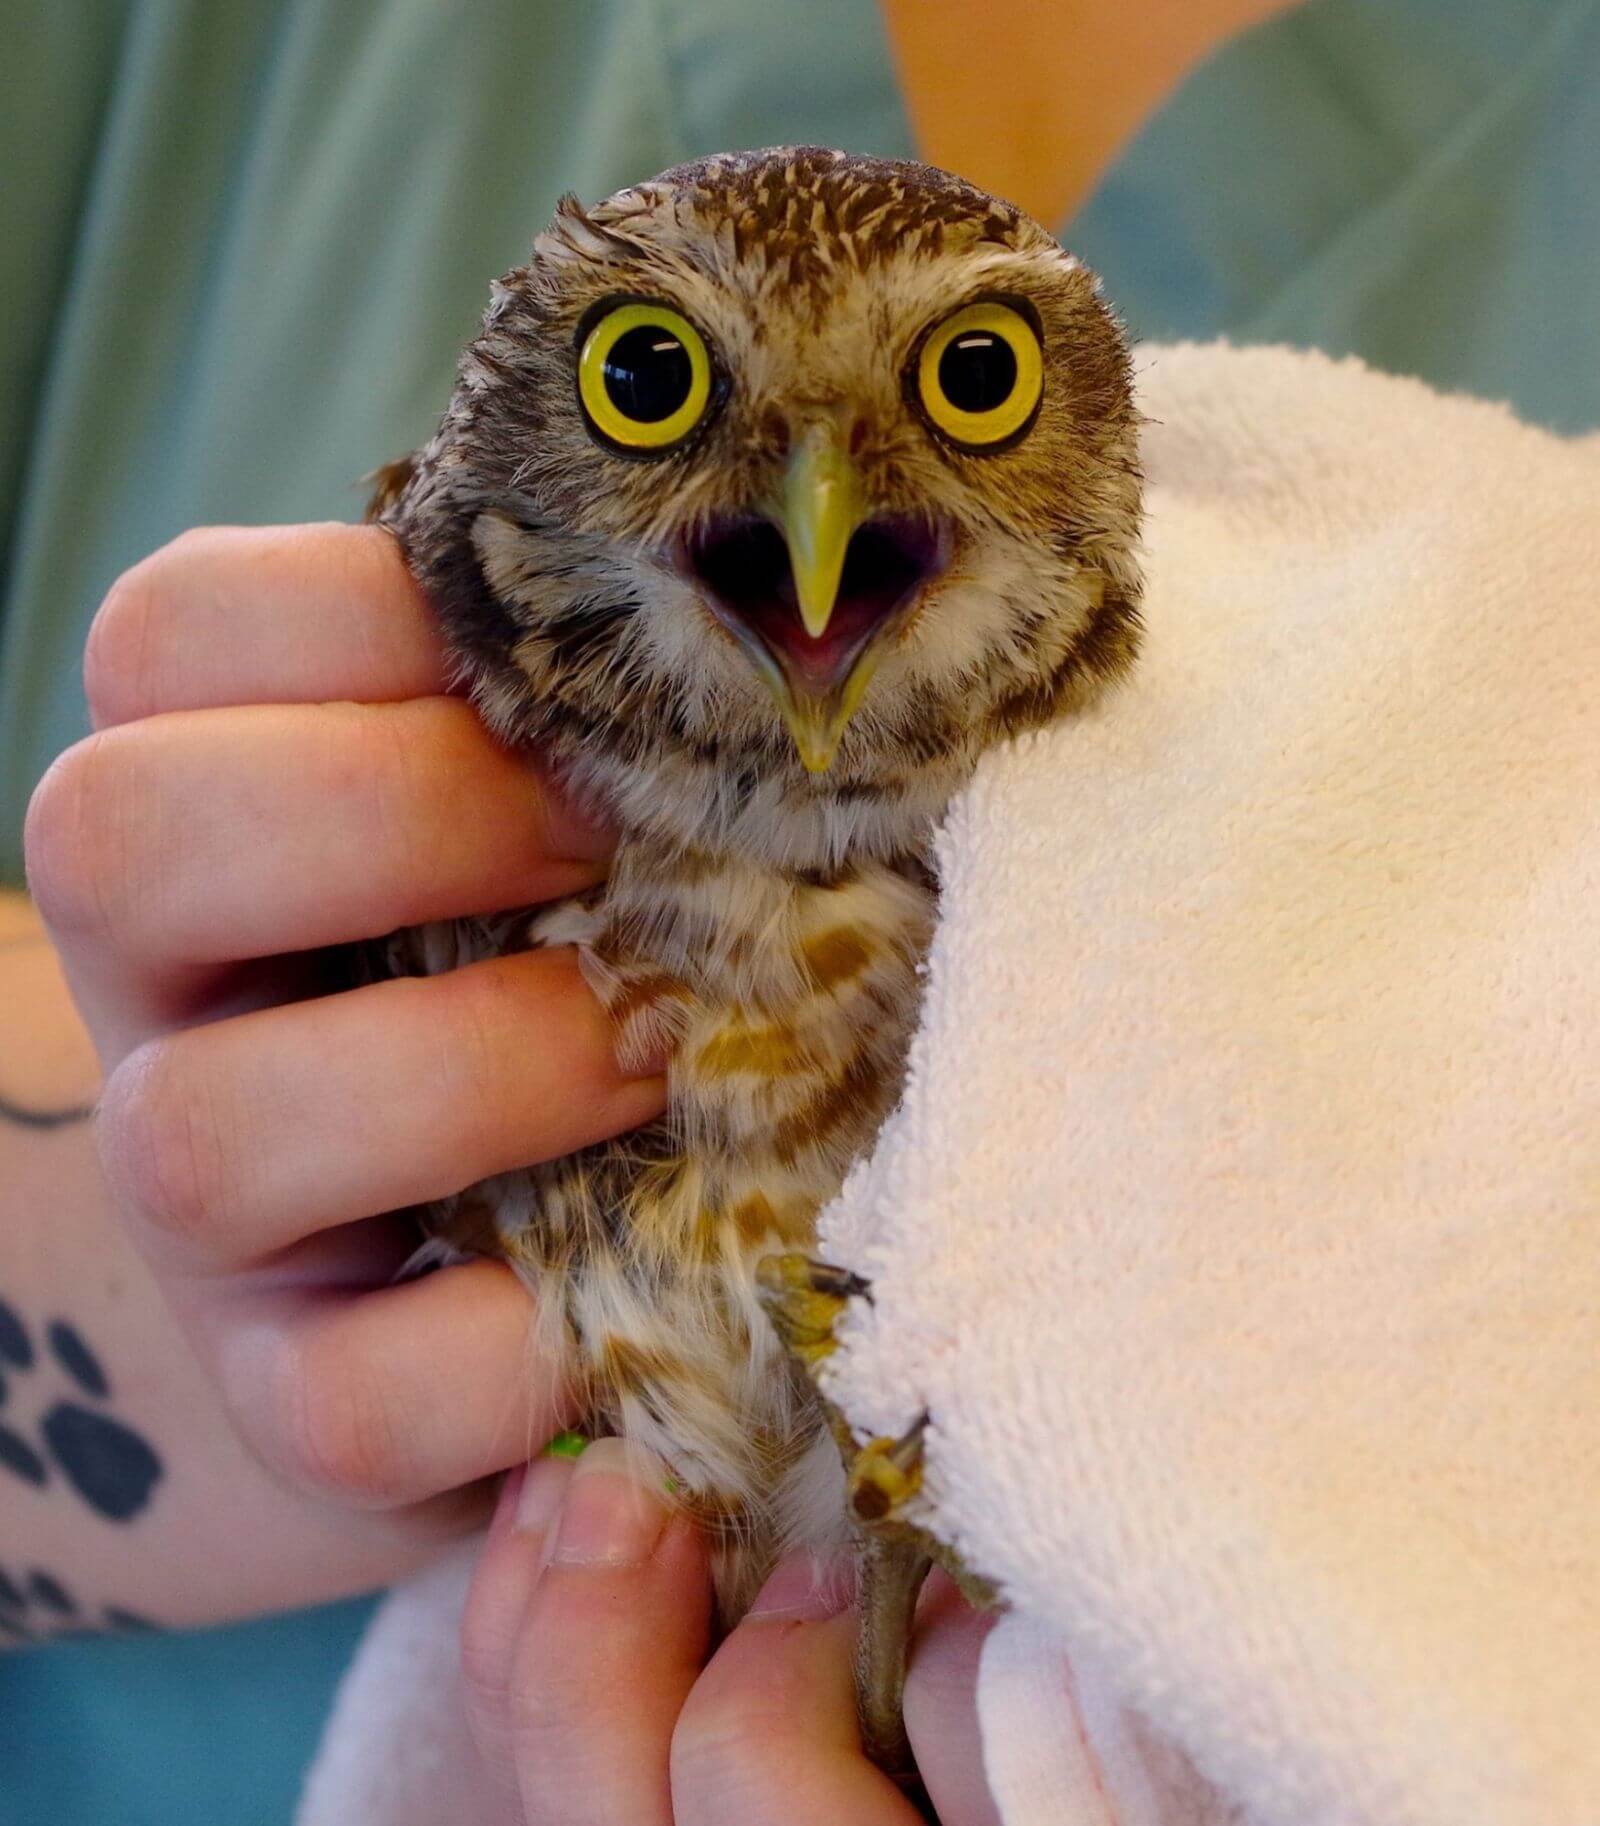 MustDo.com | Rescued owl in rehab at CROW hospital on Sanibel Island, FL